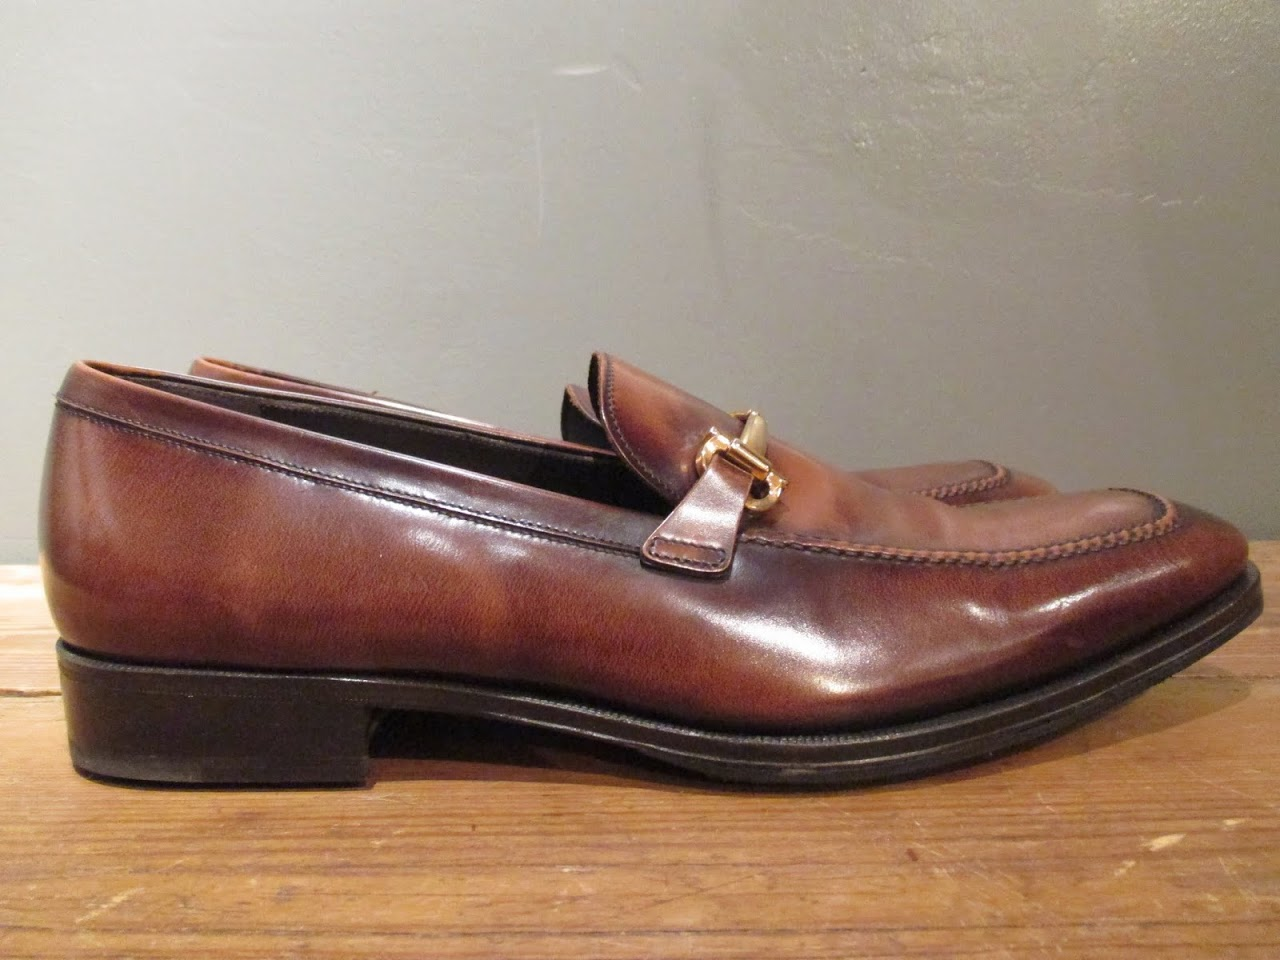 housing-works-Salvatore-Ferragamo-Loafers-1